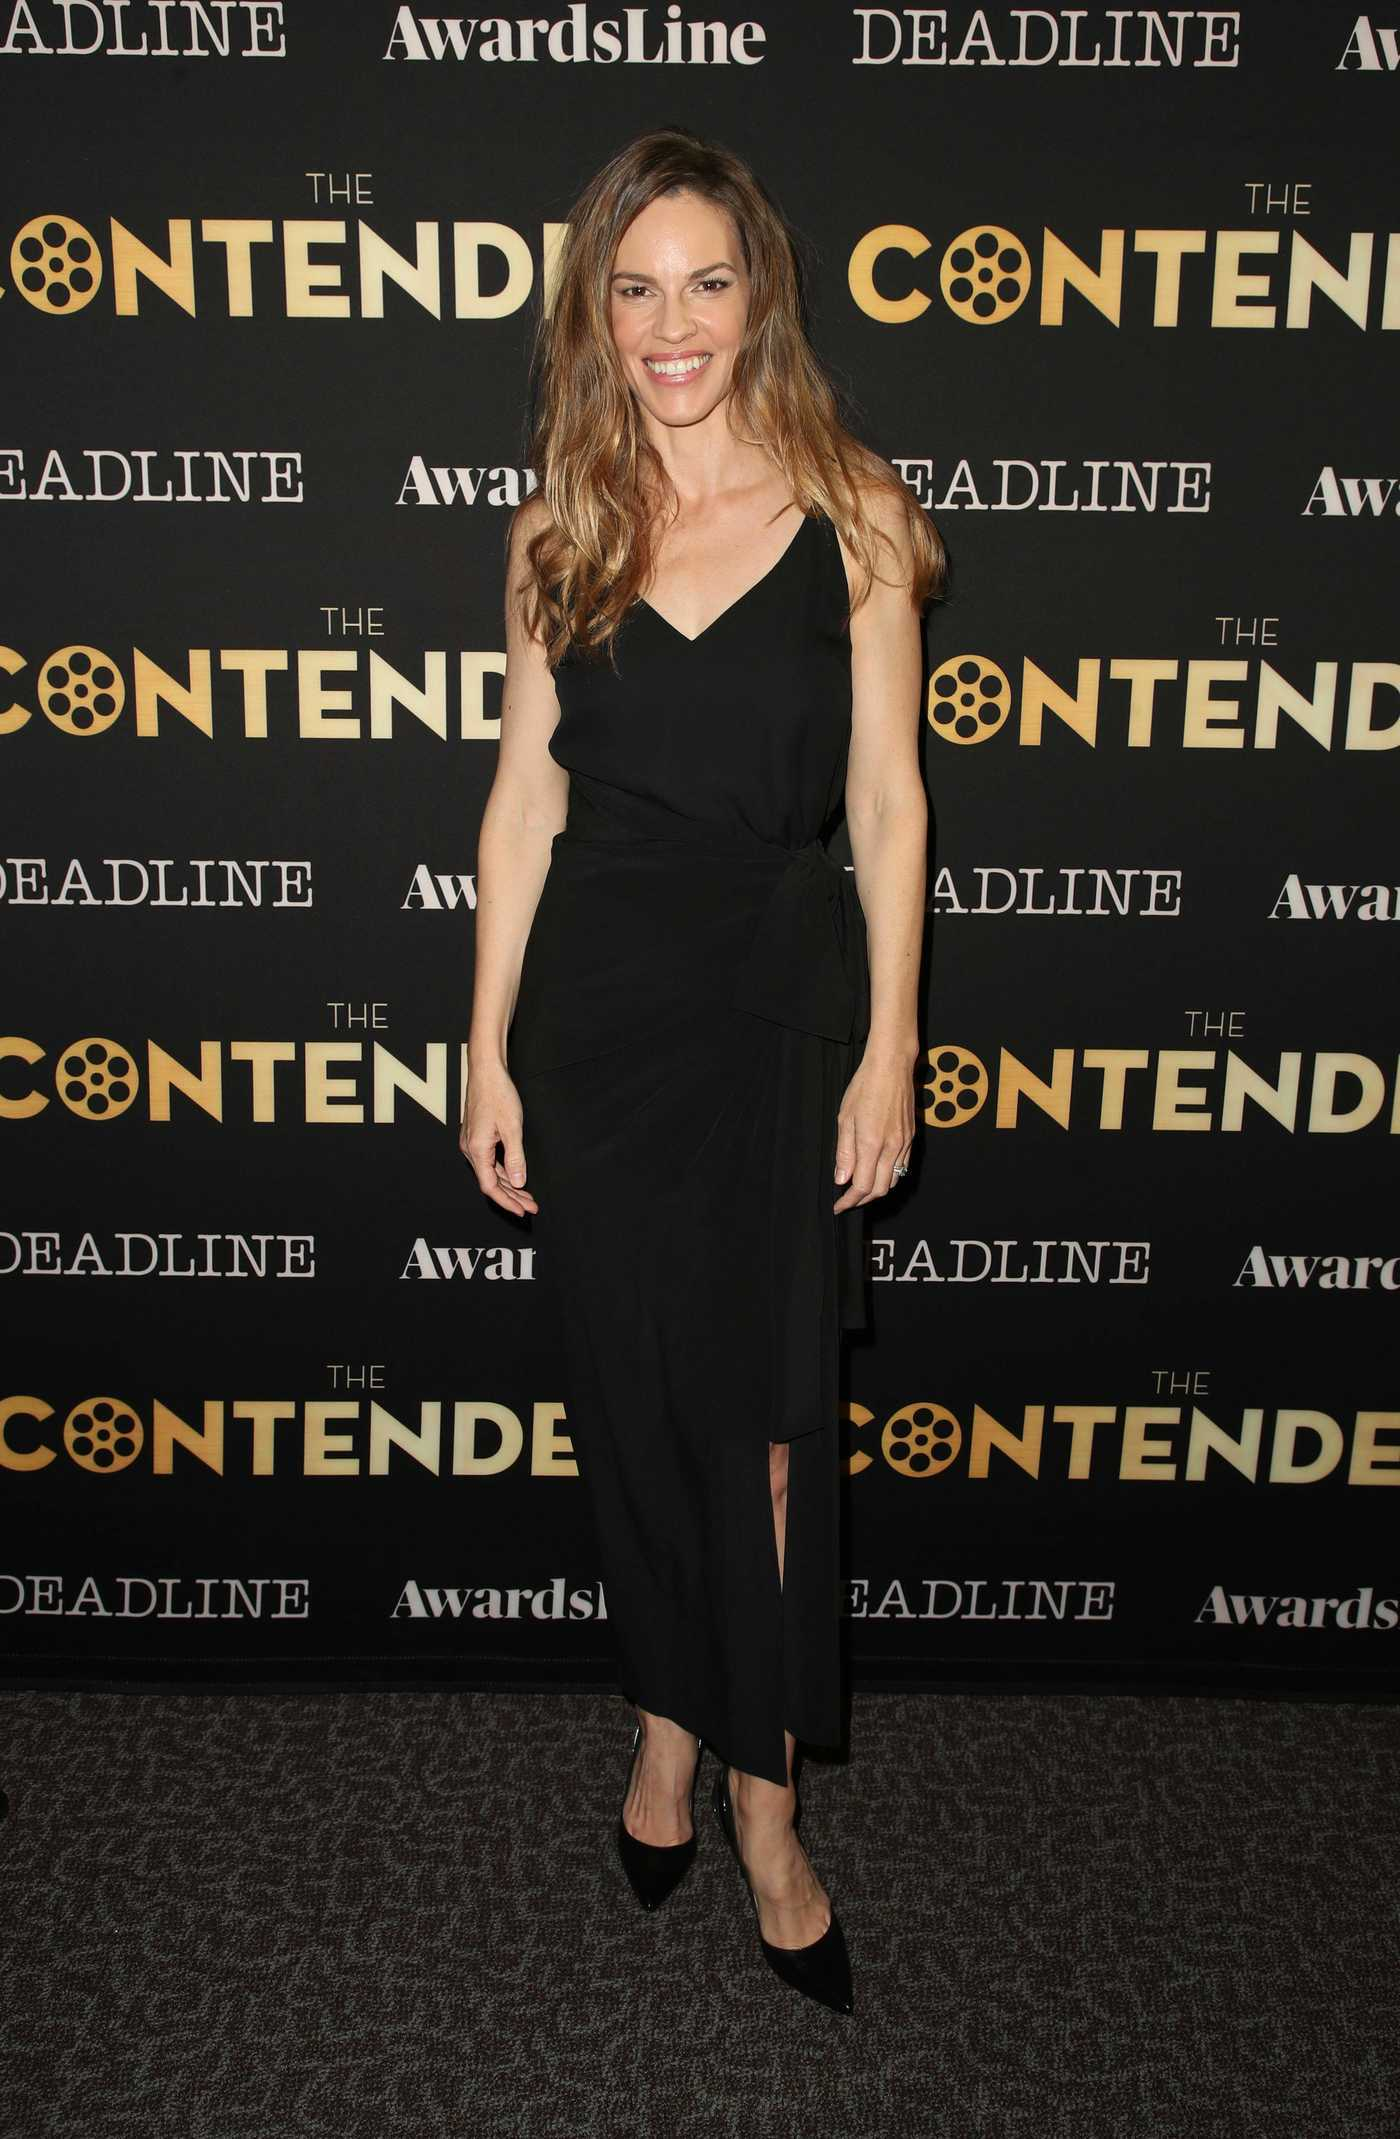 Hilary Swank Attends 2018 Deadline Contenders in Los Angeles 11/03/2018